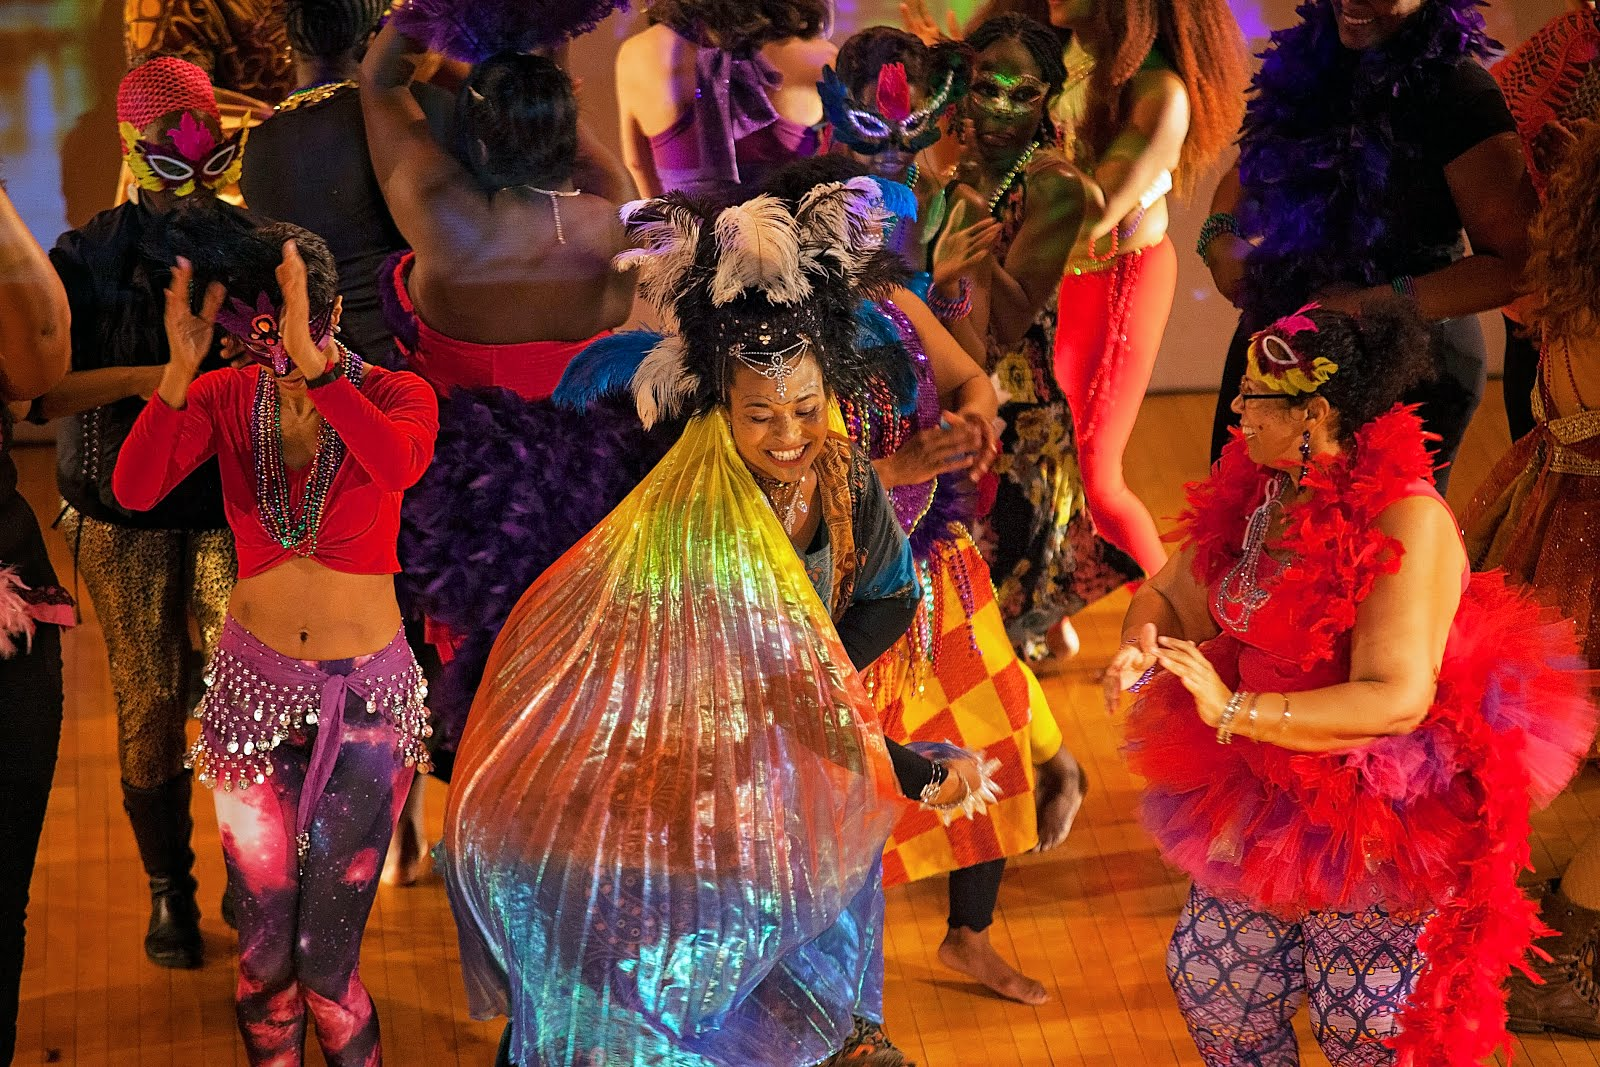 Check out 2015 Mardi Gras RVA photos